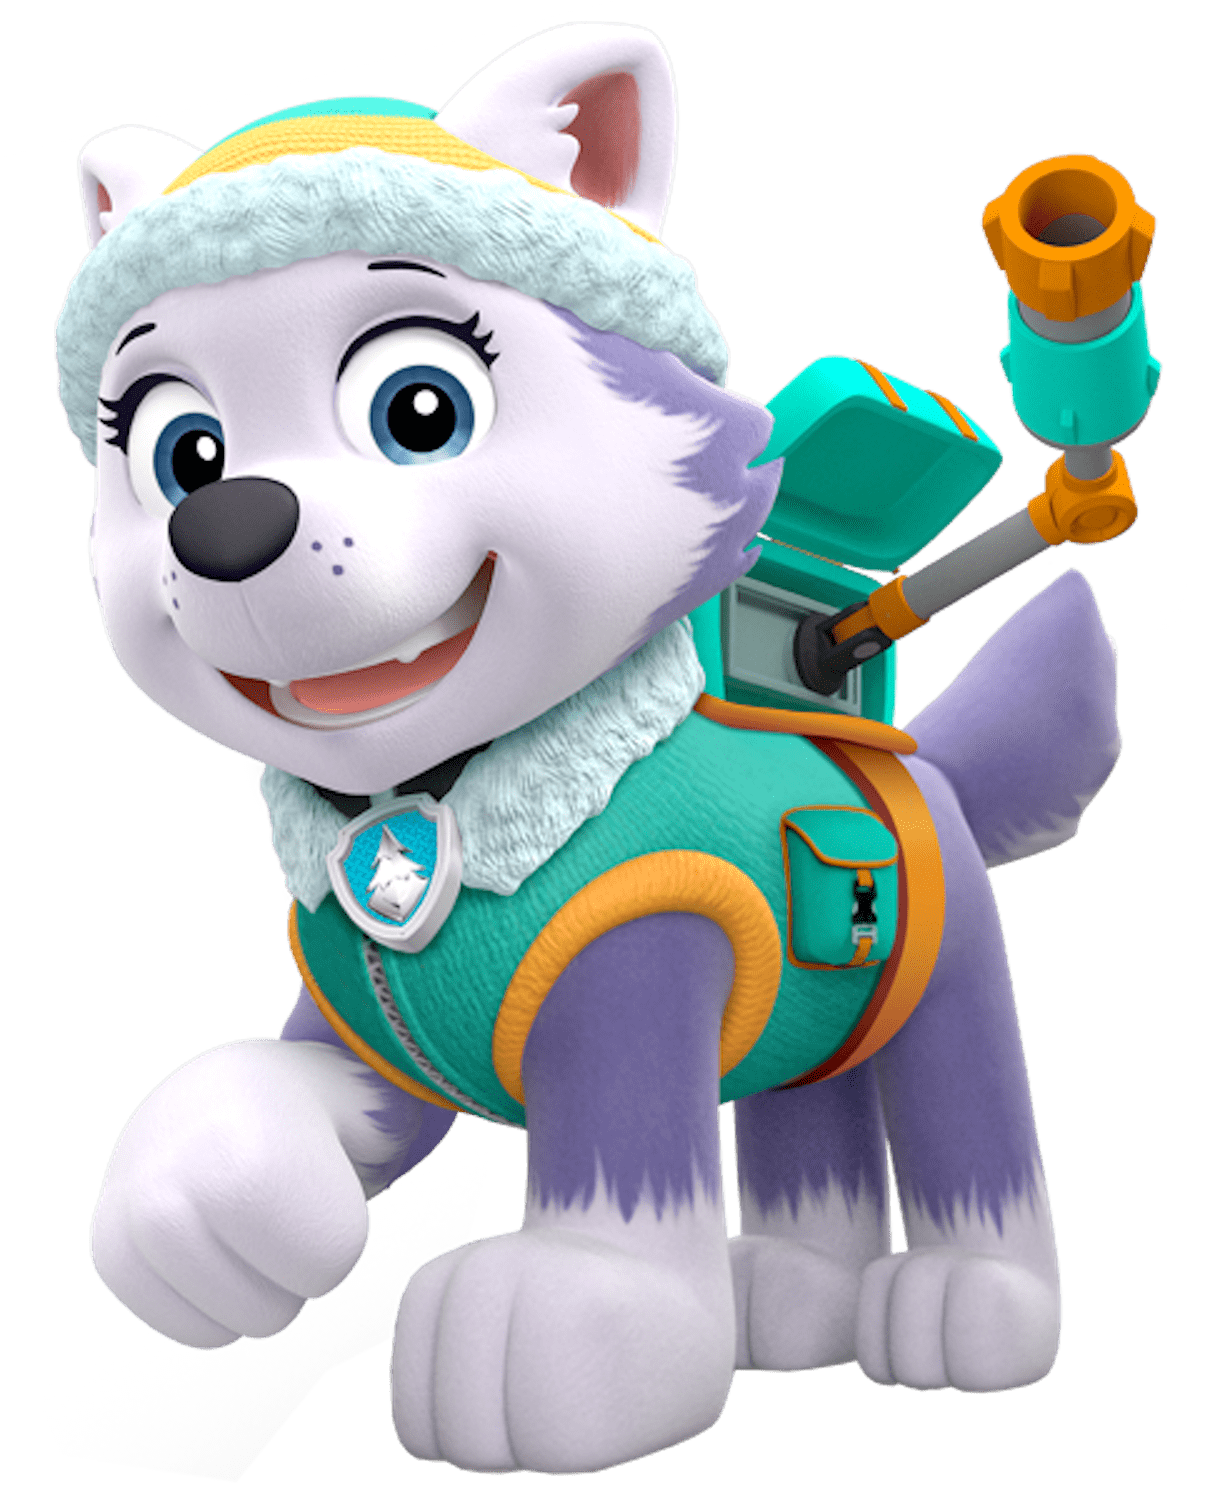 Paw patrol clipart images picture black and white library Paw Patrol Best Clipart - 14107 - TransparentPNG picture black and white library